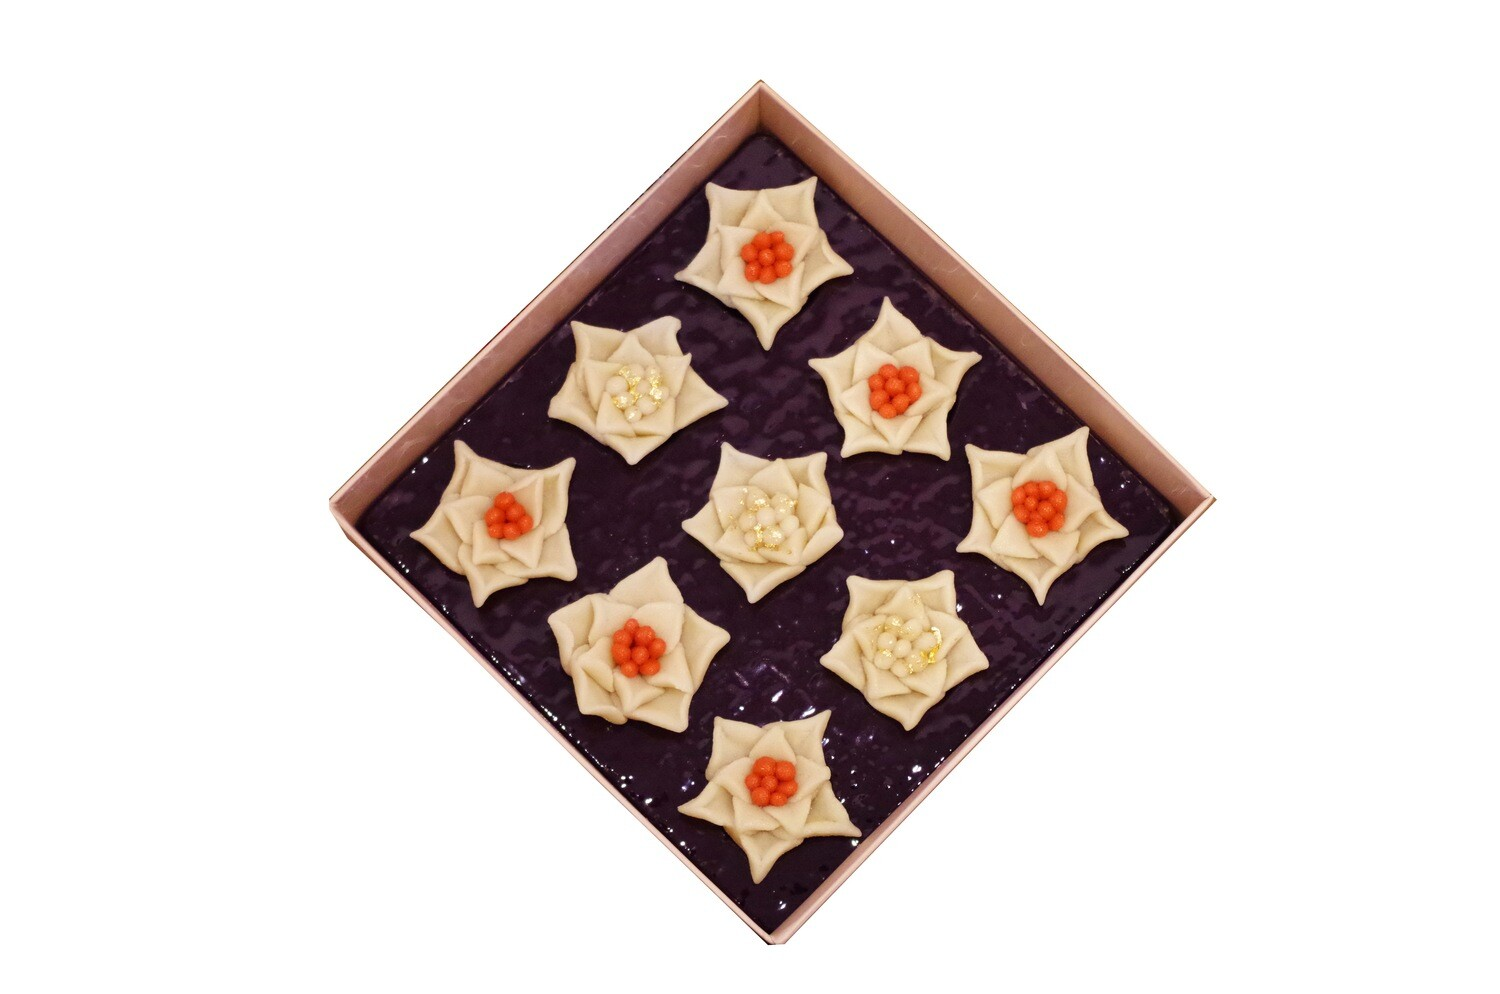 Marzipan Handcrafted Christmas Flowers with Gold Leaves (Box) - Le Marzipan de Zouk